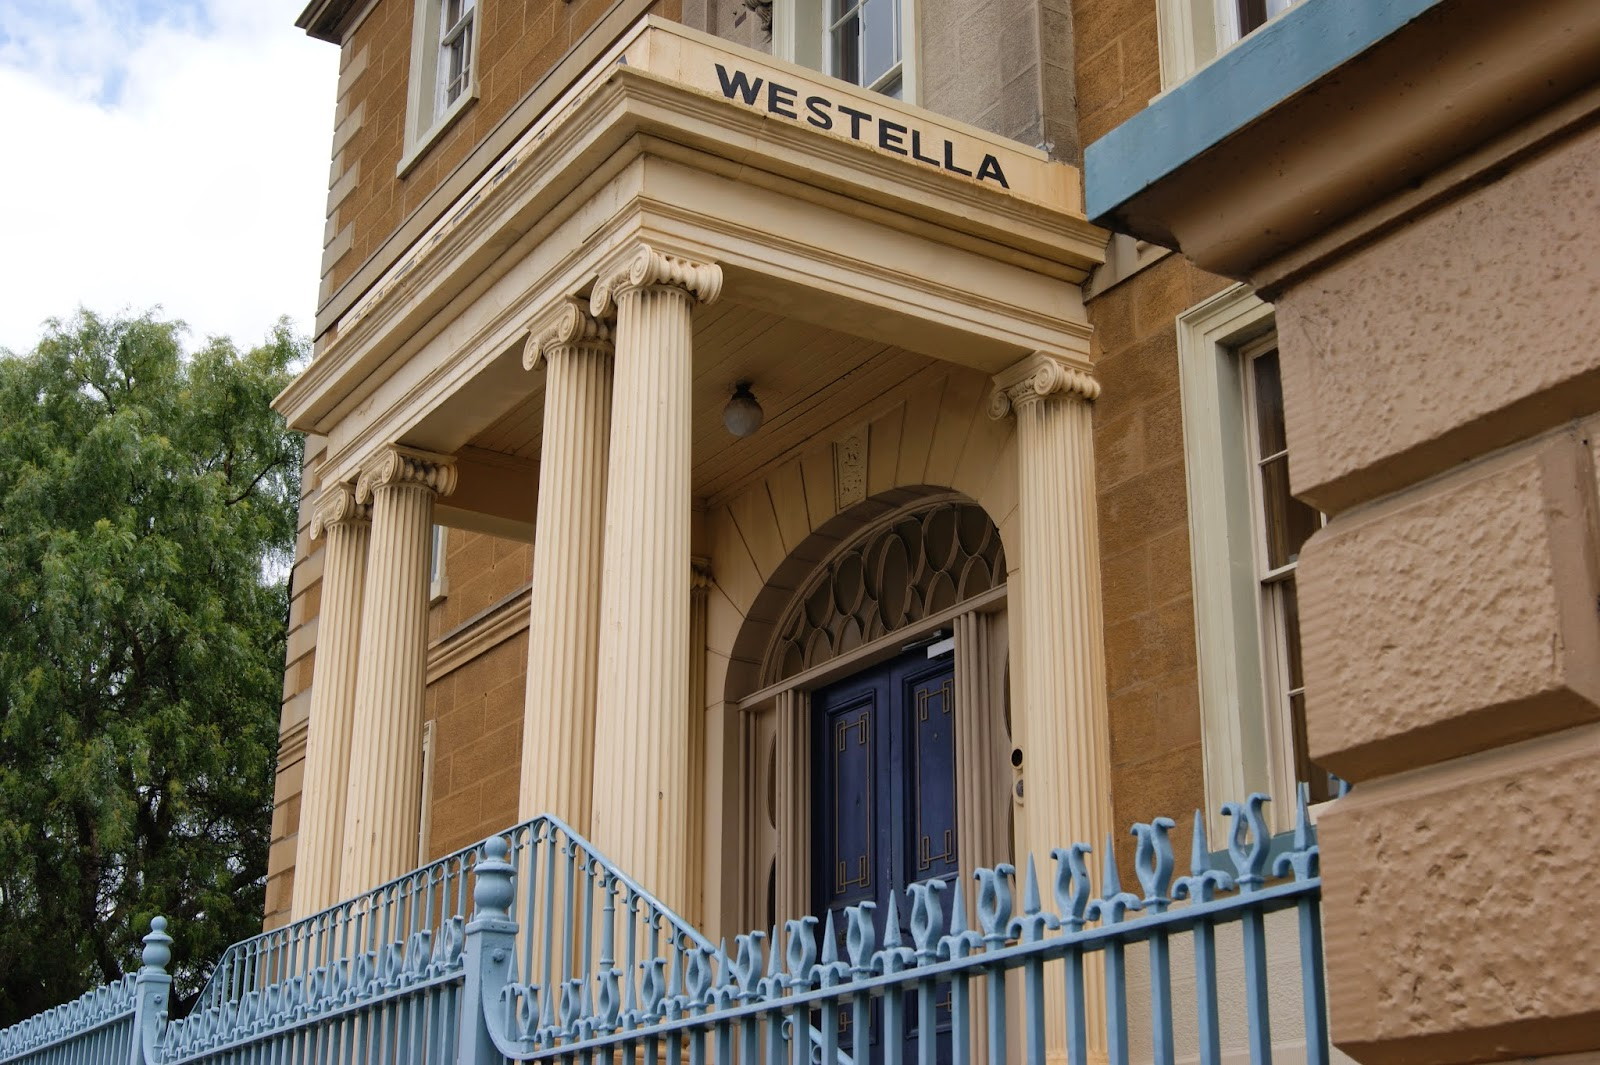 Westrella is a large colonial residence in the style of a Grecian Villa that is probably the finest remaining Georgian townhouse in Australia